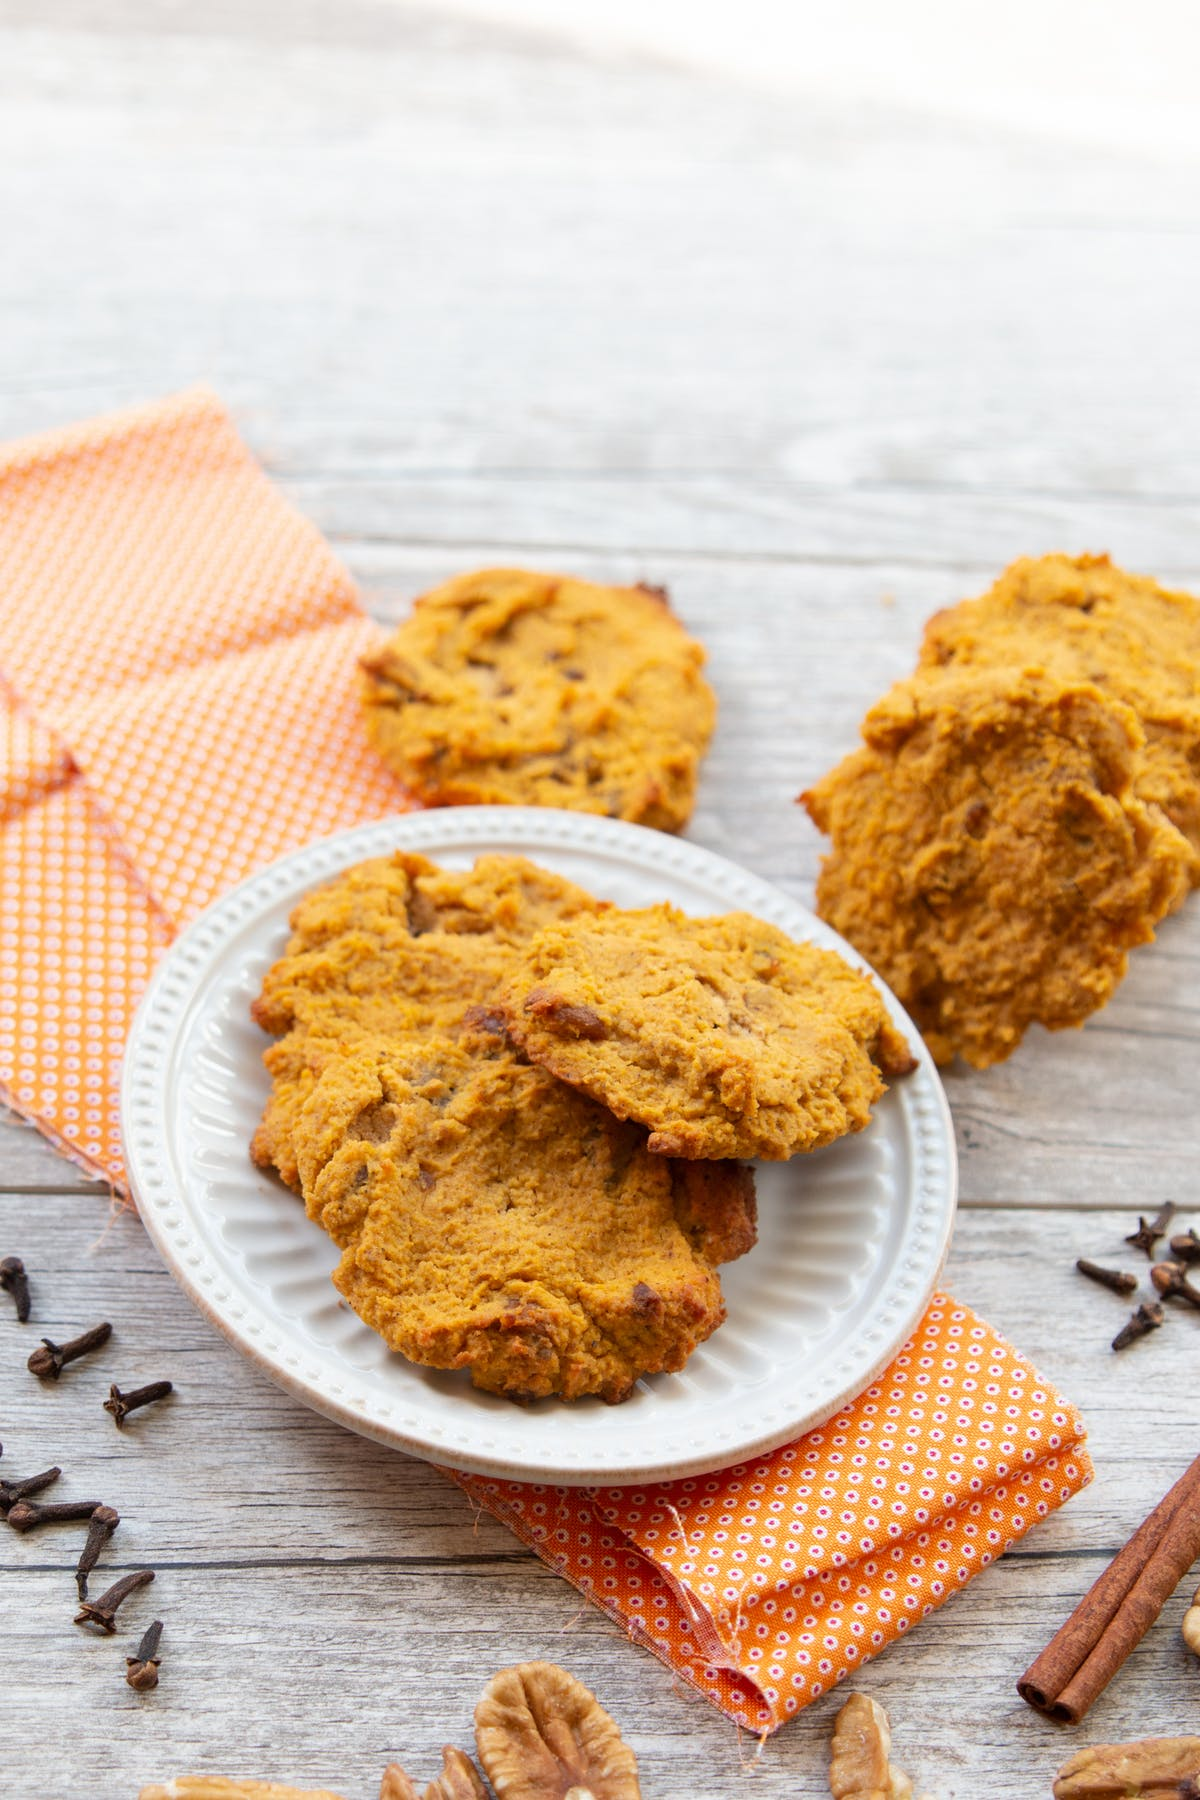 Low-carb pumpkin spice cookies